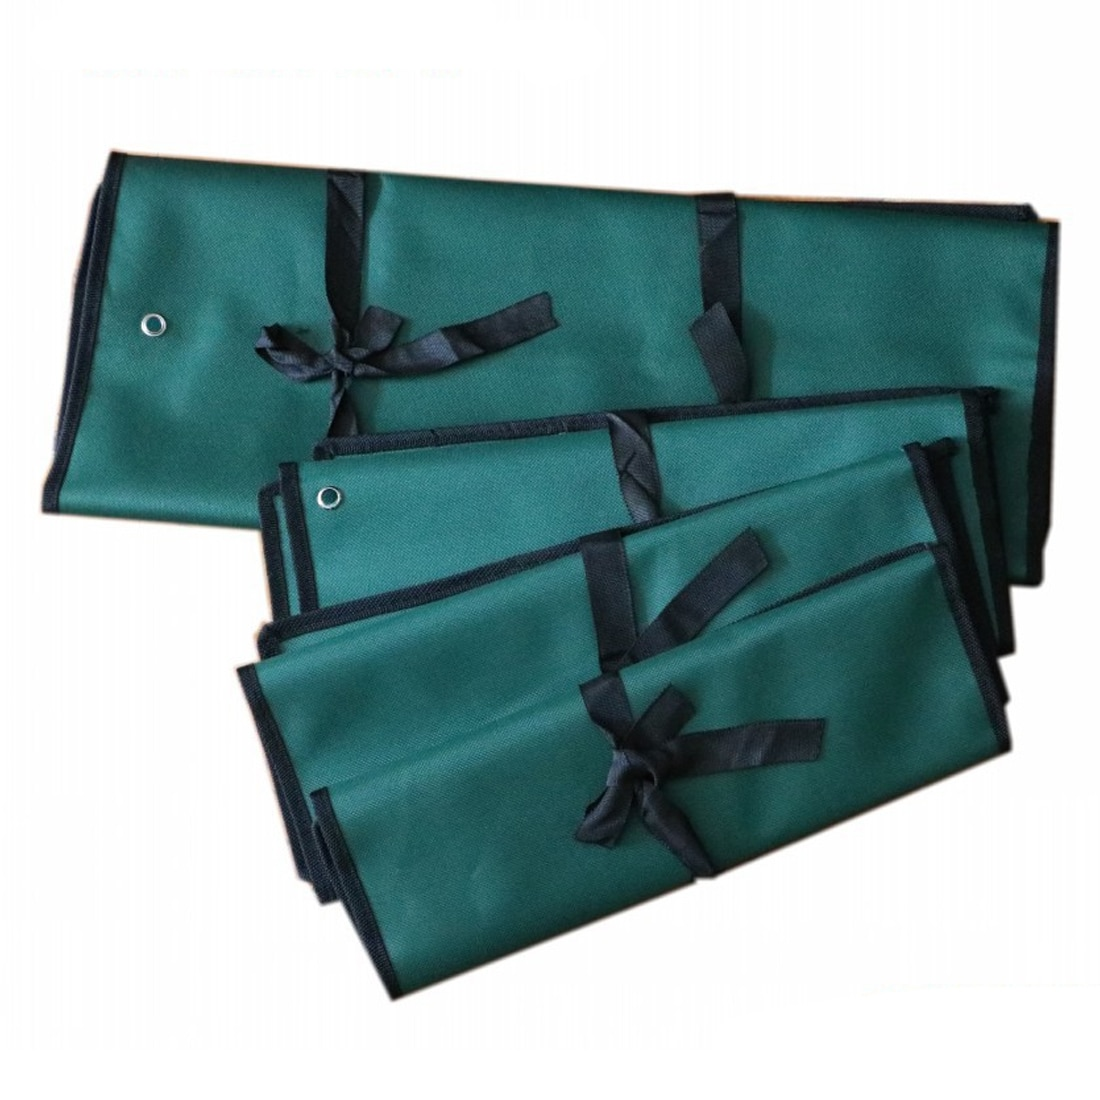 Spanner Wrench Roll Up Storage Organizer Bag Double thickening Bundled canvas tool bag Combination wrench bag недорого